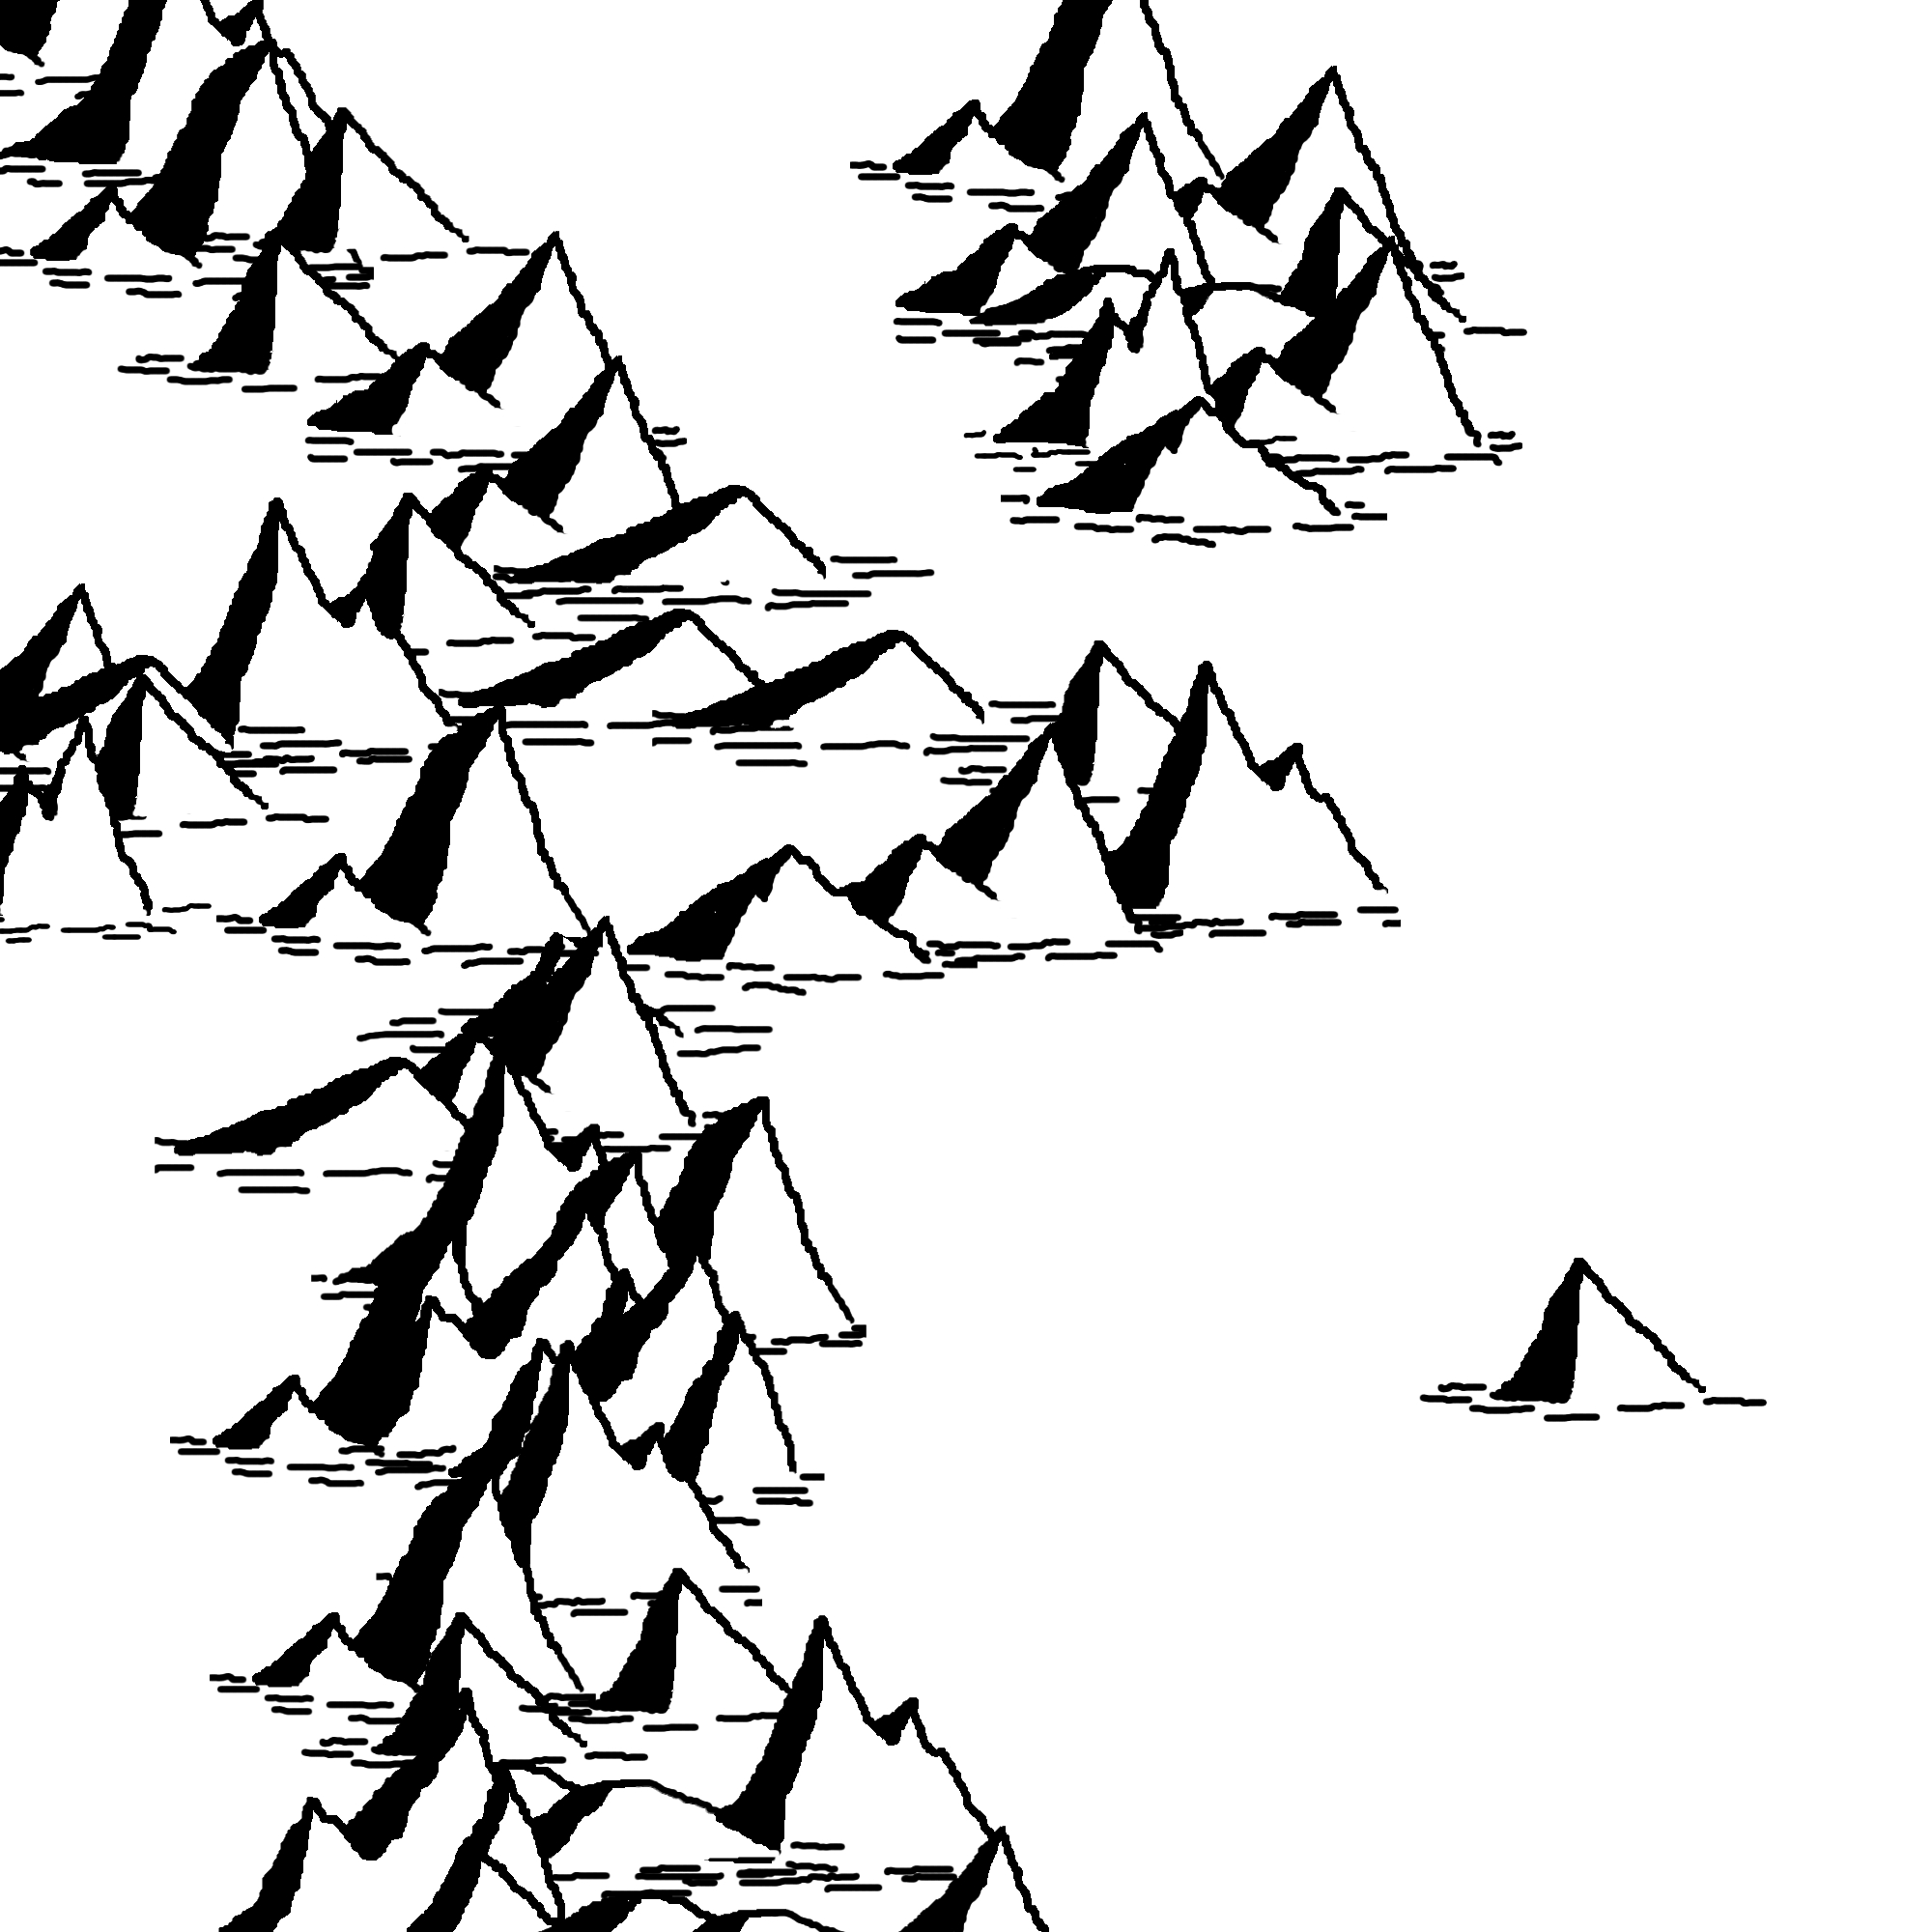 2000x2000 Makin' Mountains And Makin' Trees. Cartographic Principles